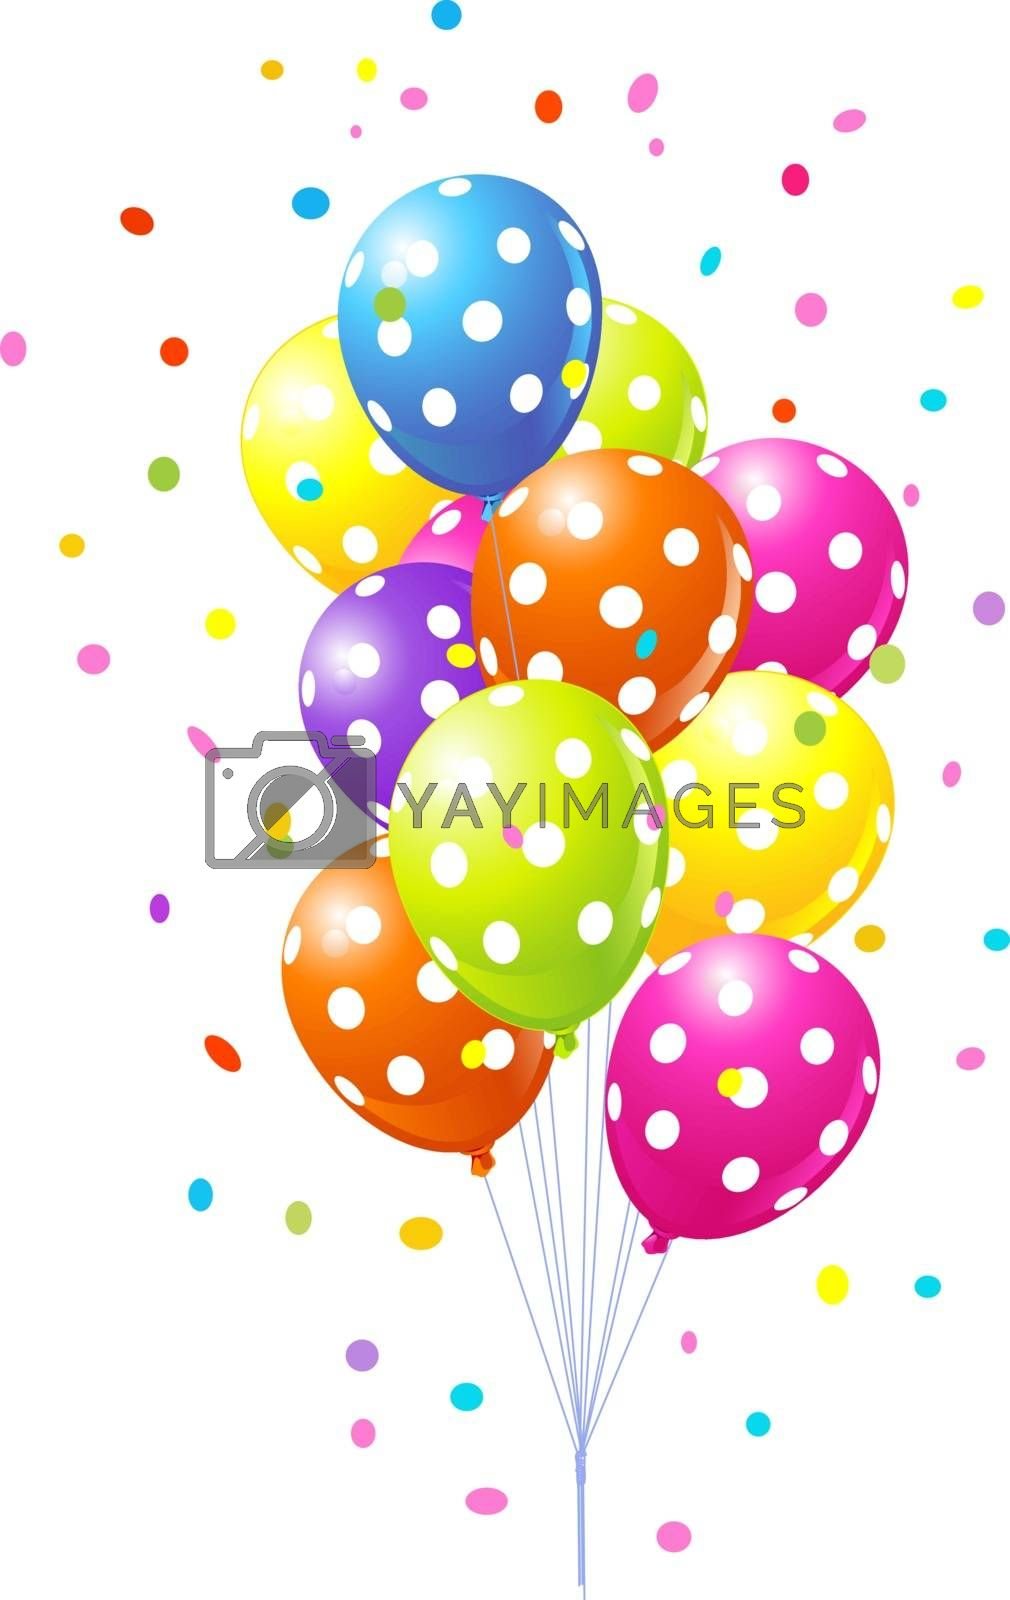 Royalty free image of Bunch of colorful balloons by Dazdraperma